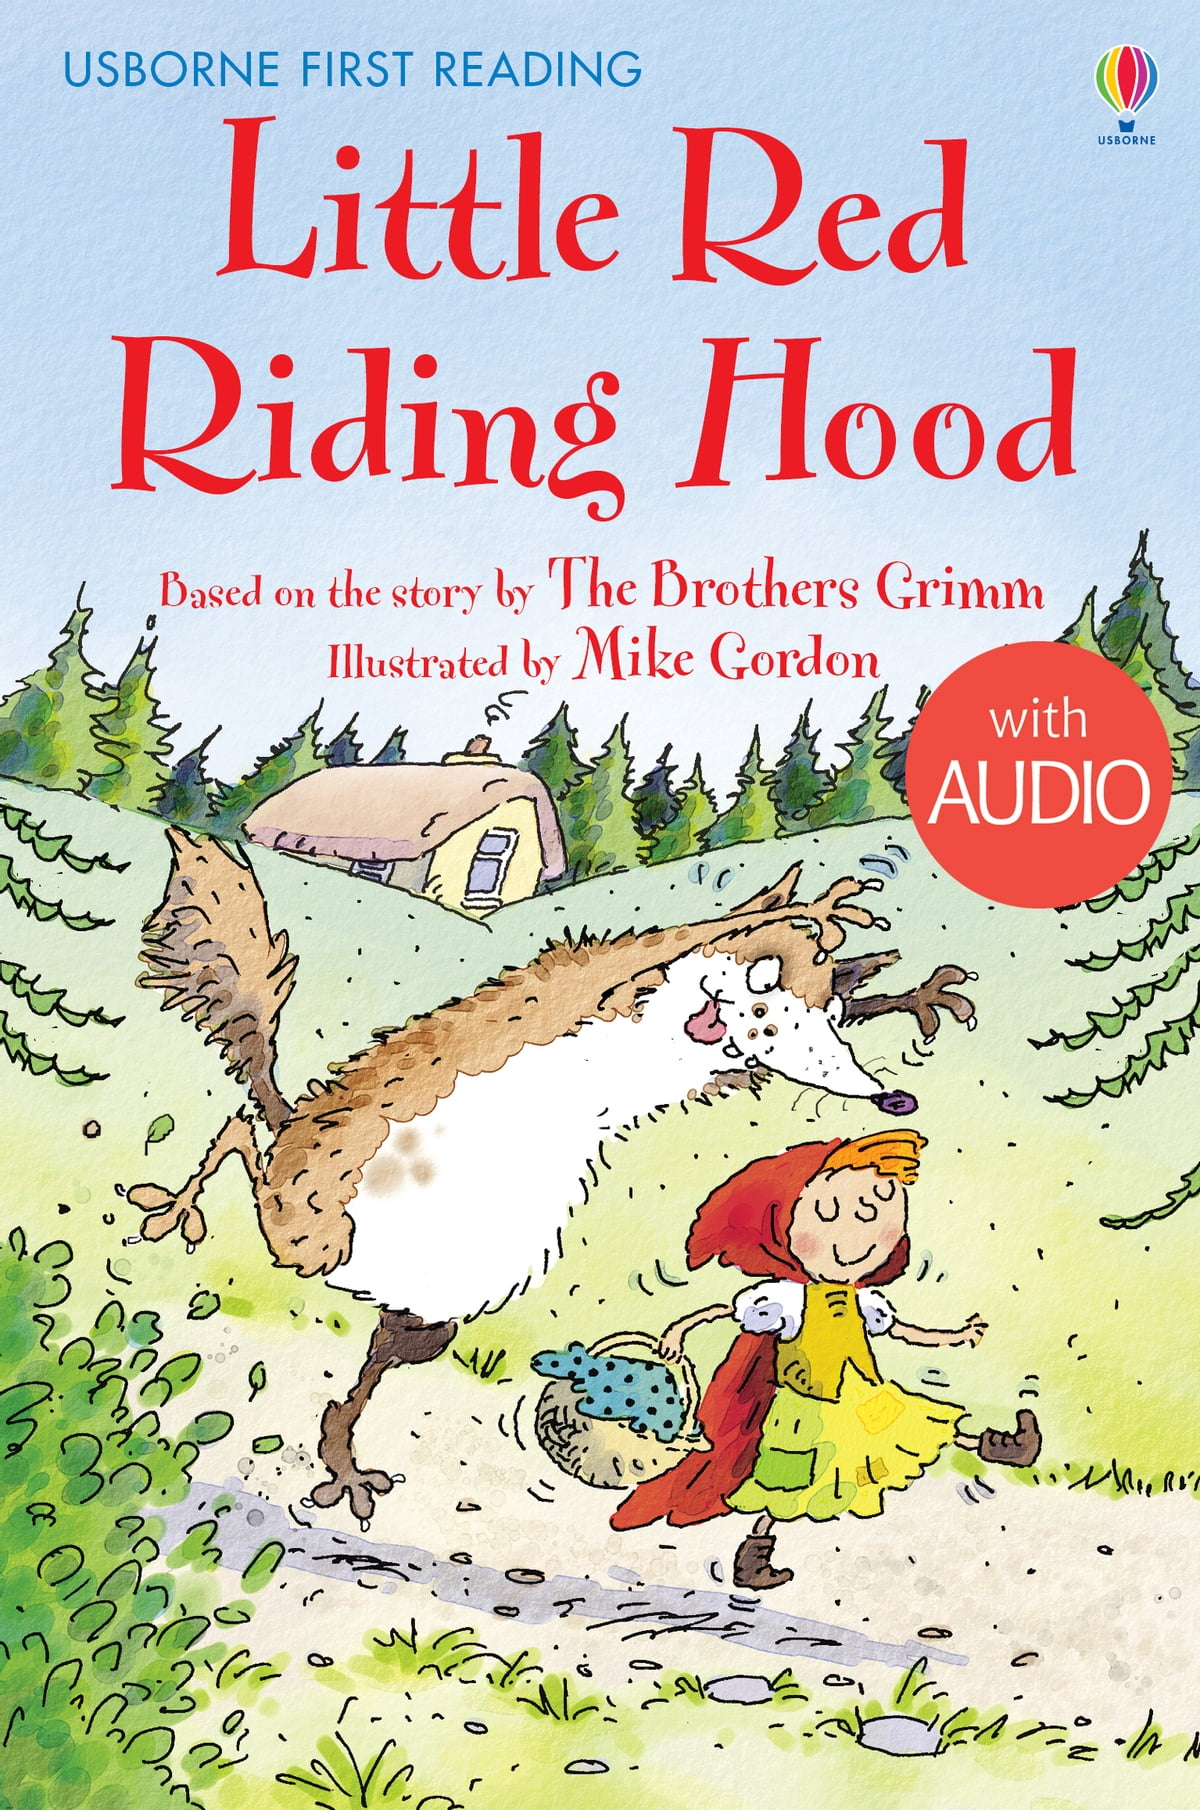 Little Red Riding Hood Usborne First Reading Level Four Ebook By